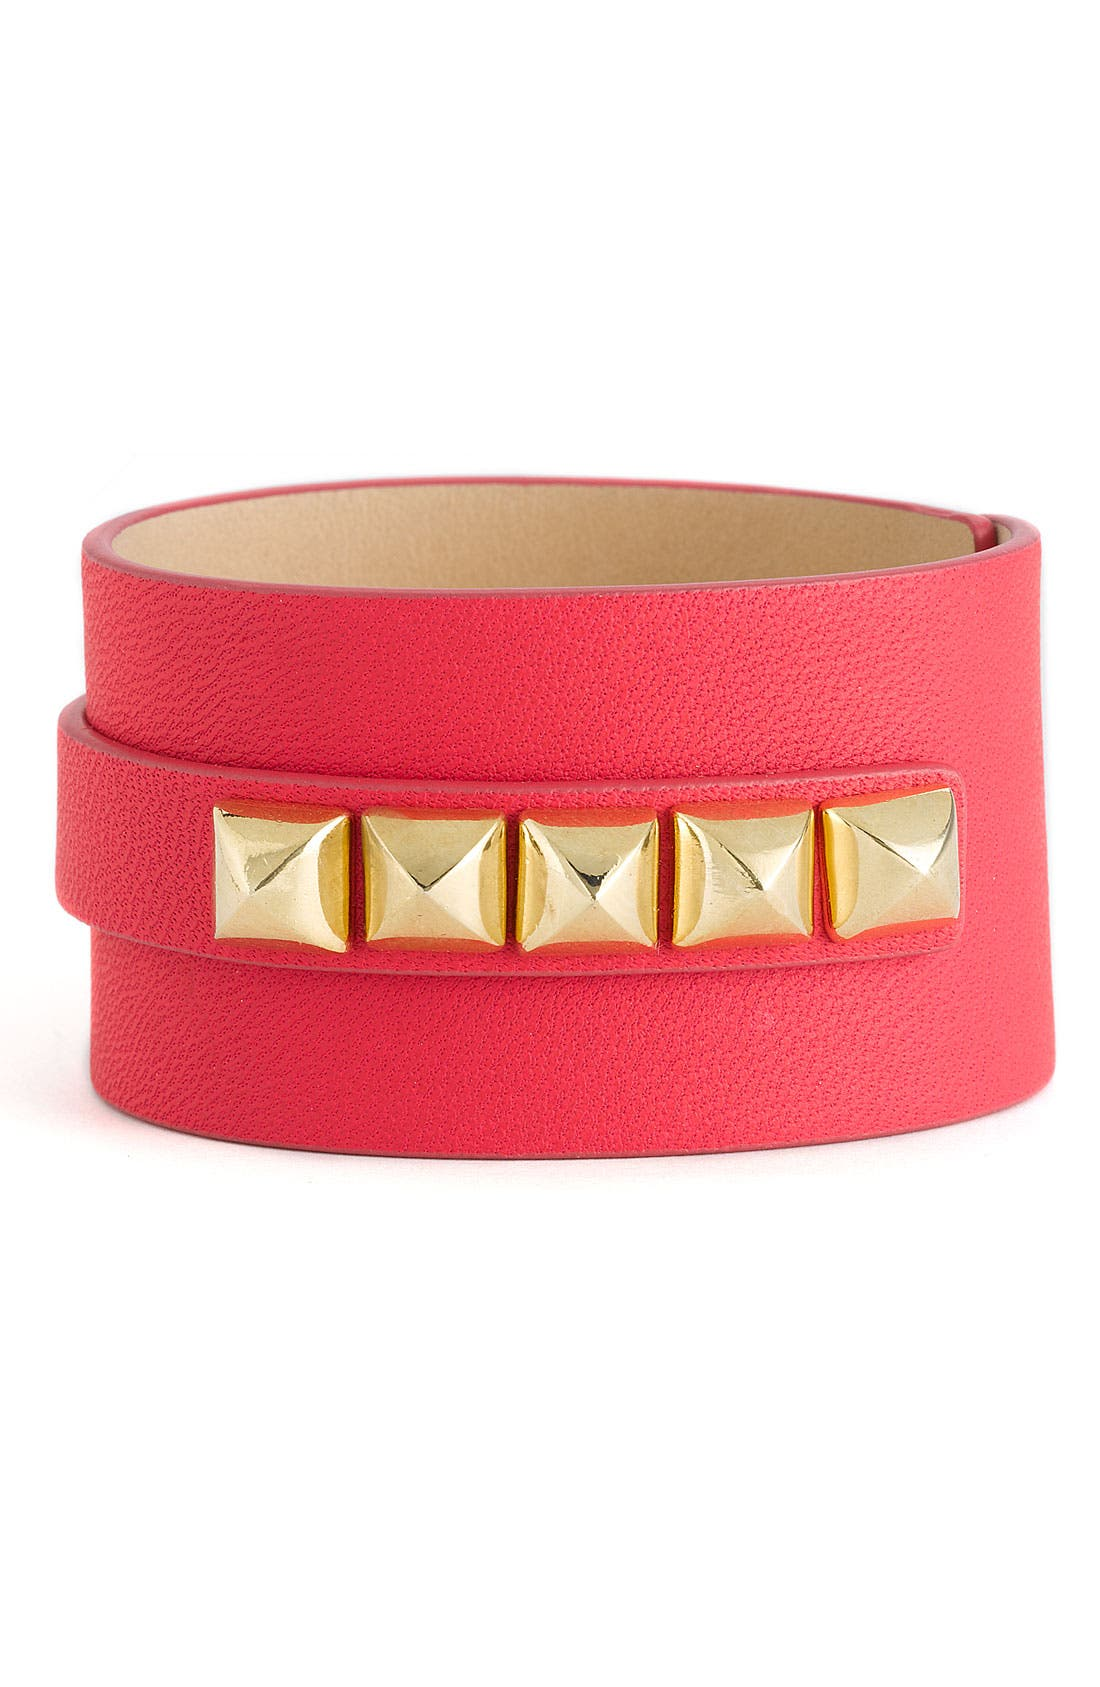 Alternate Image 1 Selected - Juicy Couture Leather Charm Cuff